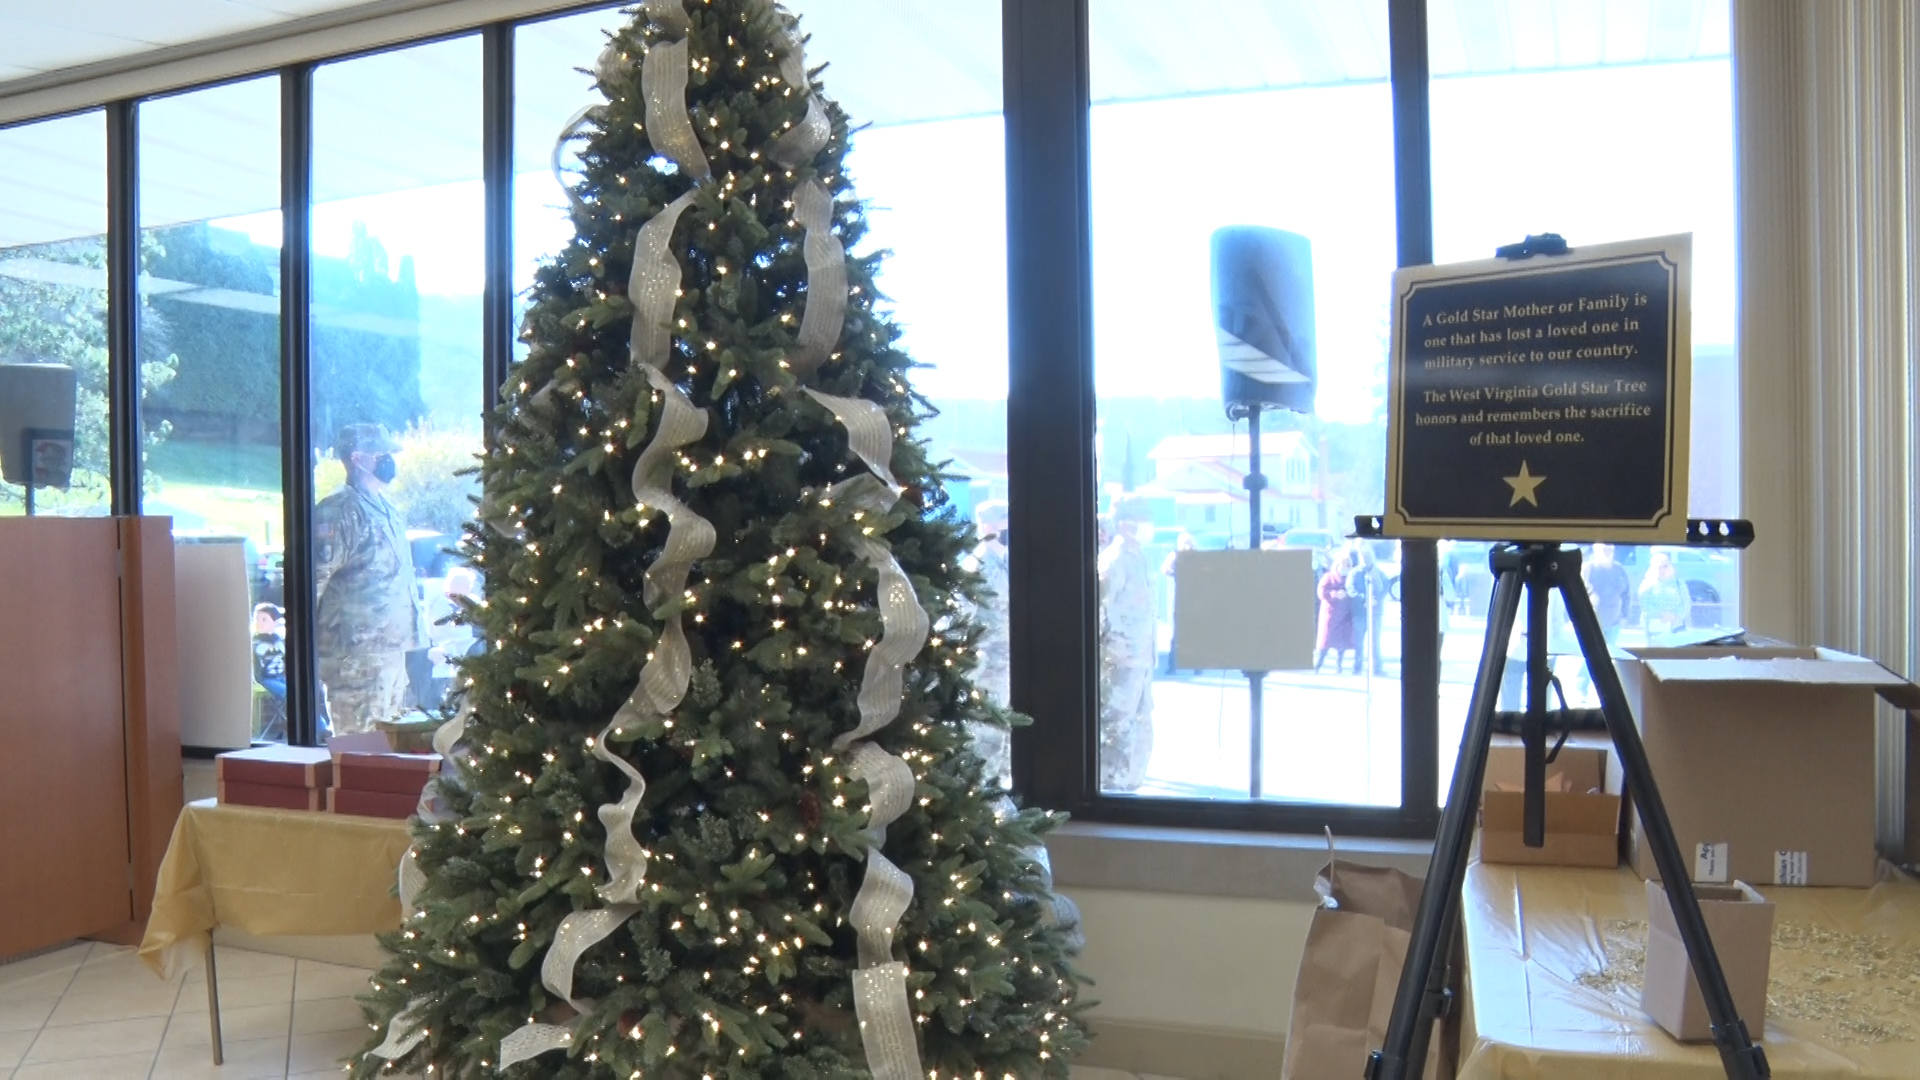 Gold Star Remembrance and Honor Tree displayed in Greenbrier